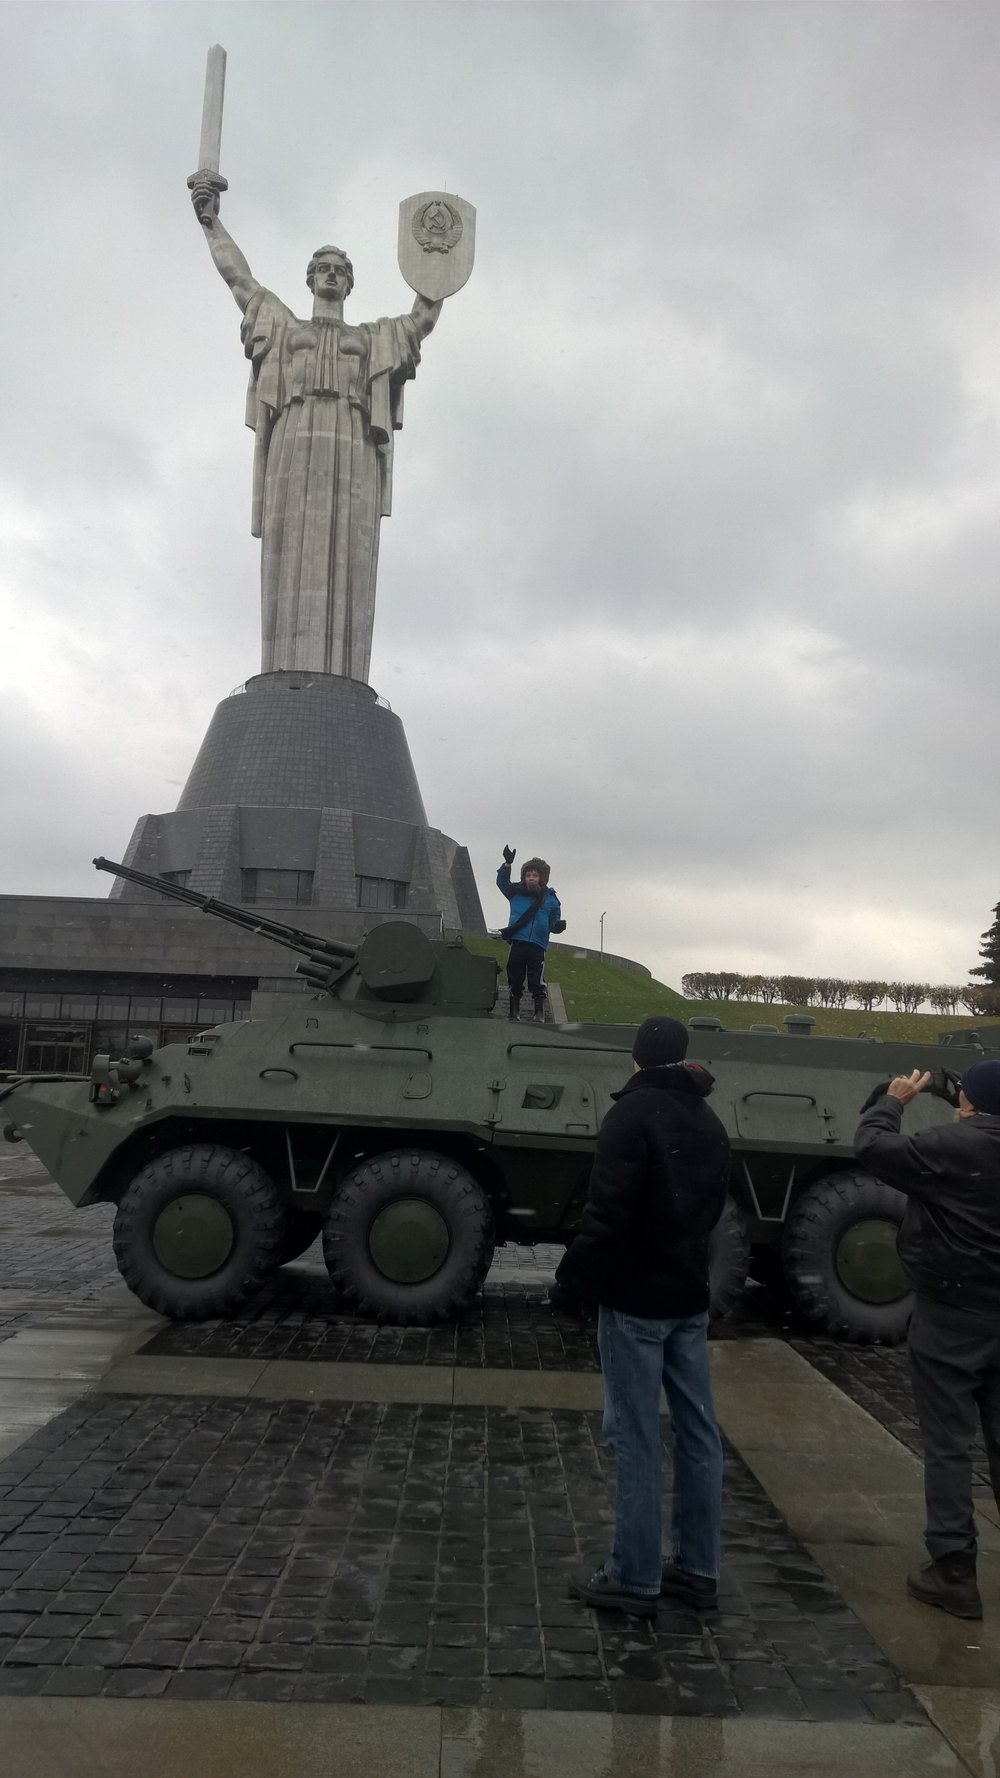 The Motherland Statue in Ukraine was built just prior to the fall of the U.S.S.R.  Note the hammer and sickle on her shield.